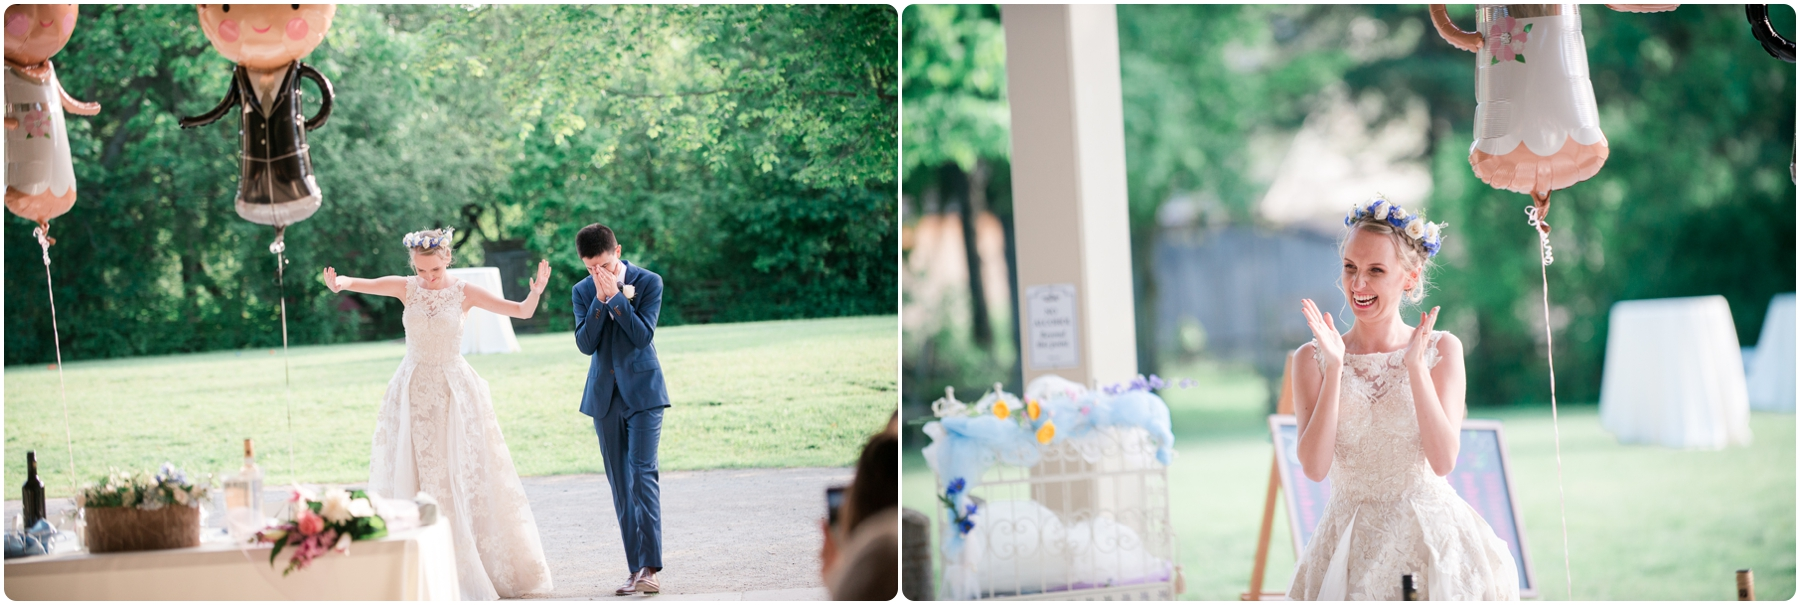 Black Creek Pioneer Village Wedding- Agata & Chris_0255